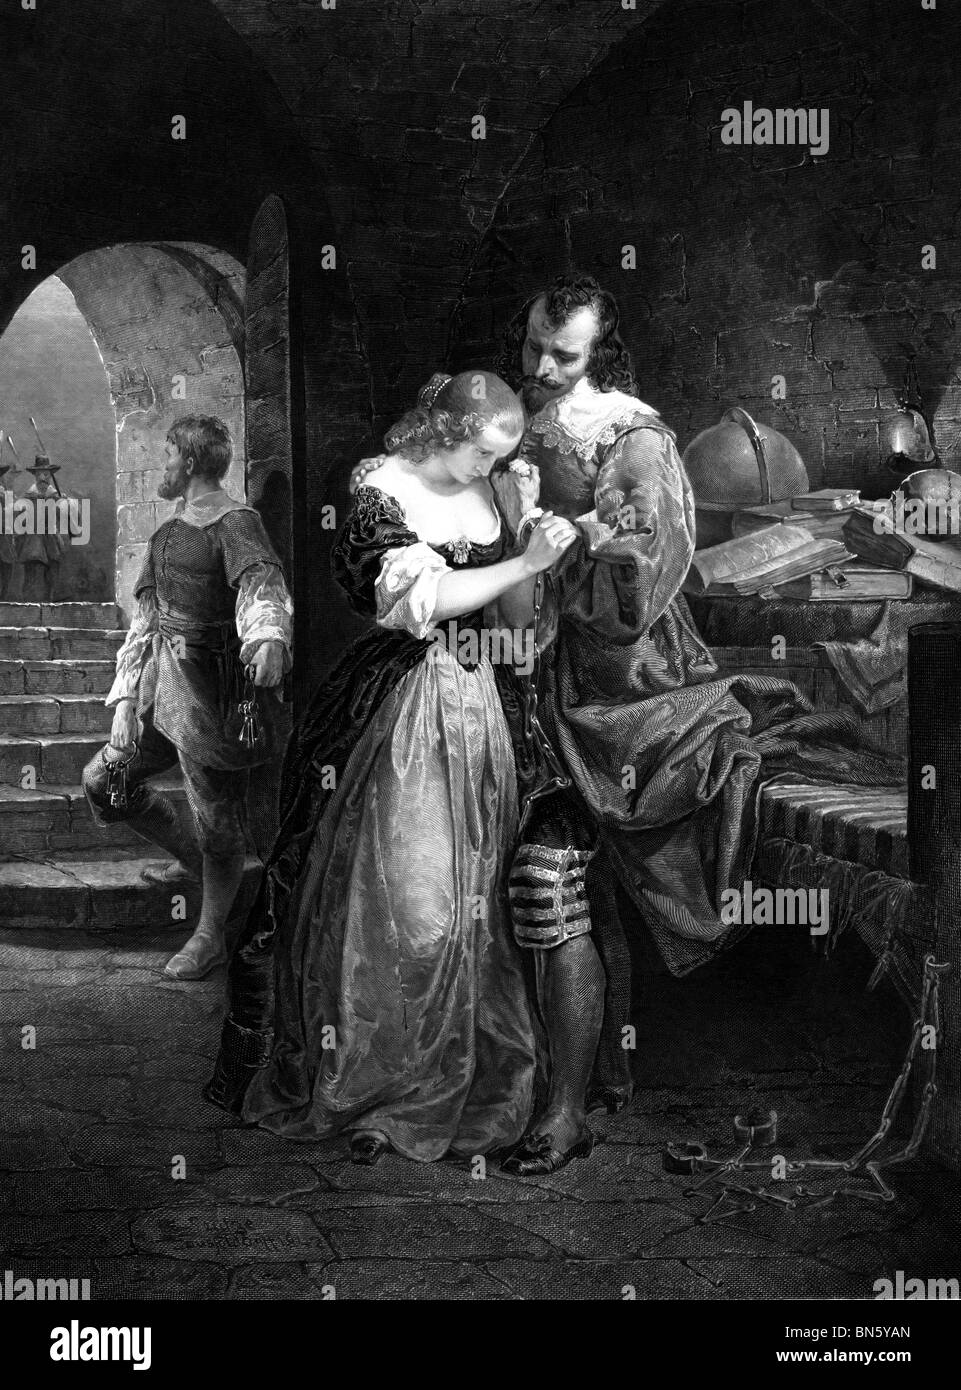 Sir Walter Raleigh, parting with his wife, prior to his execution - Stock Image